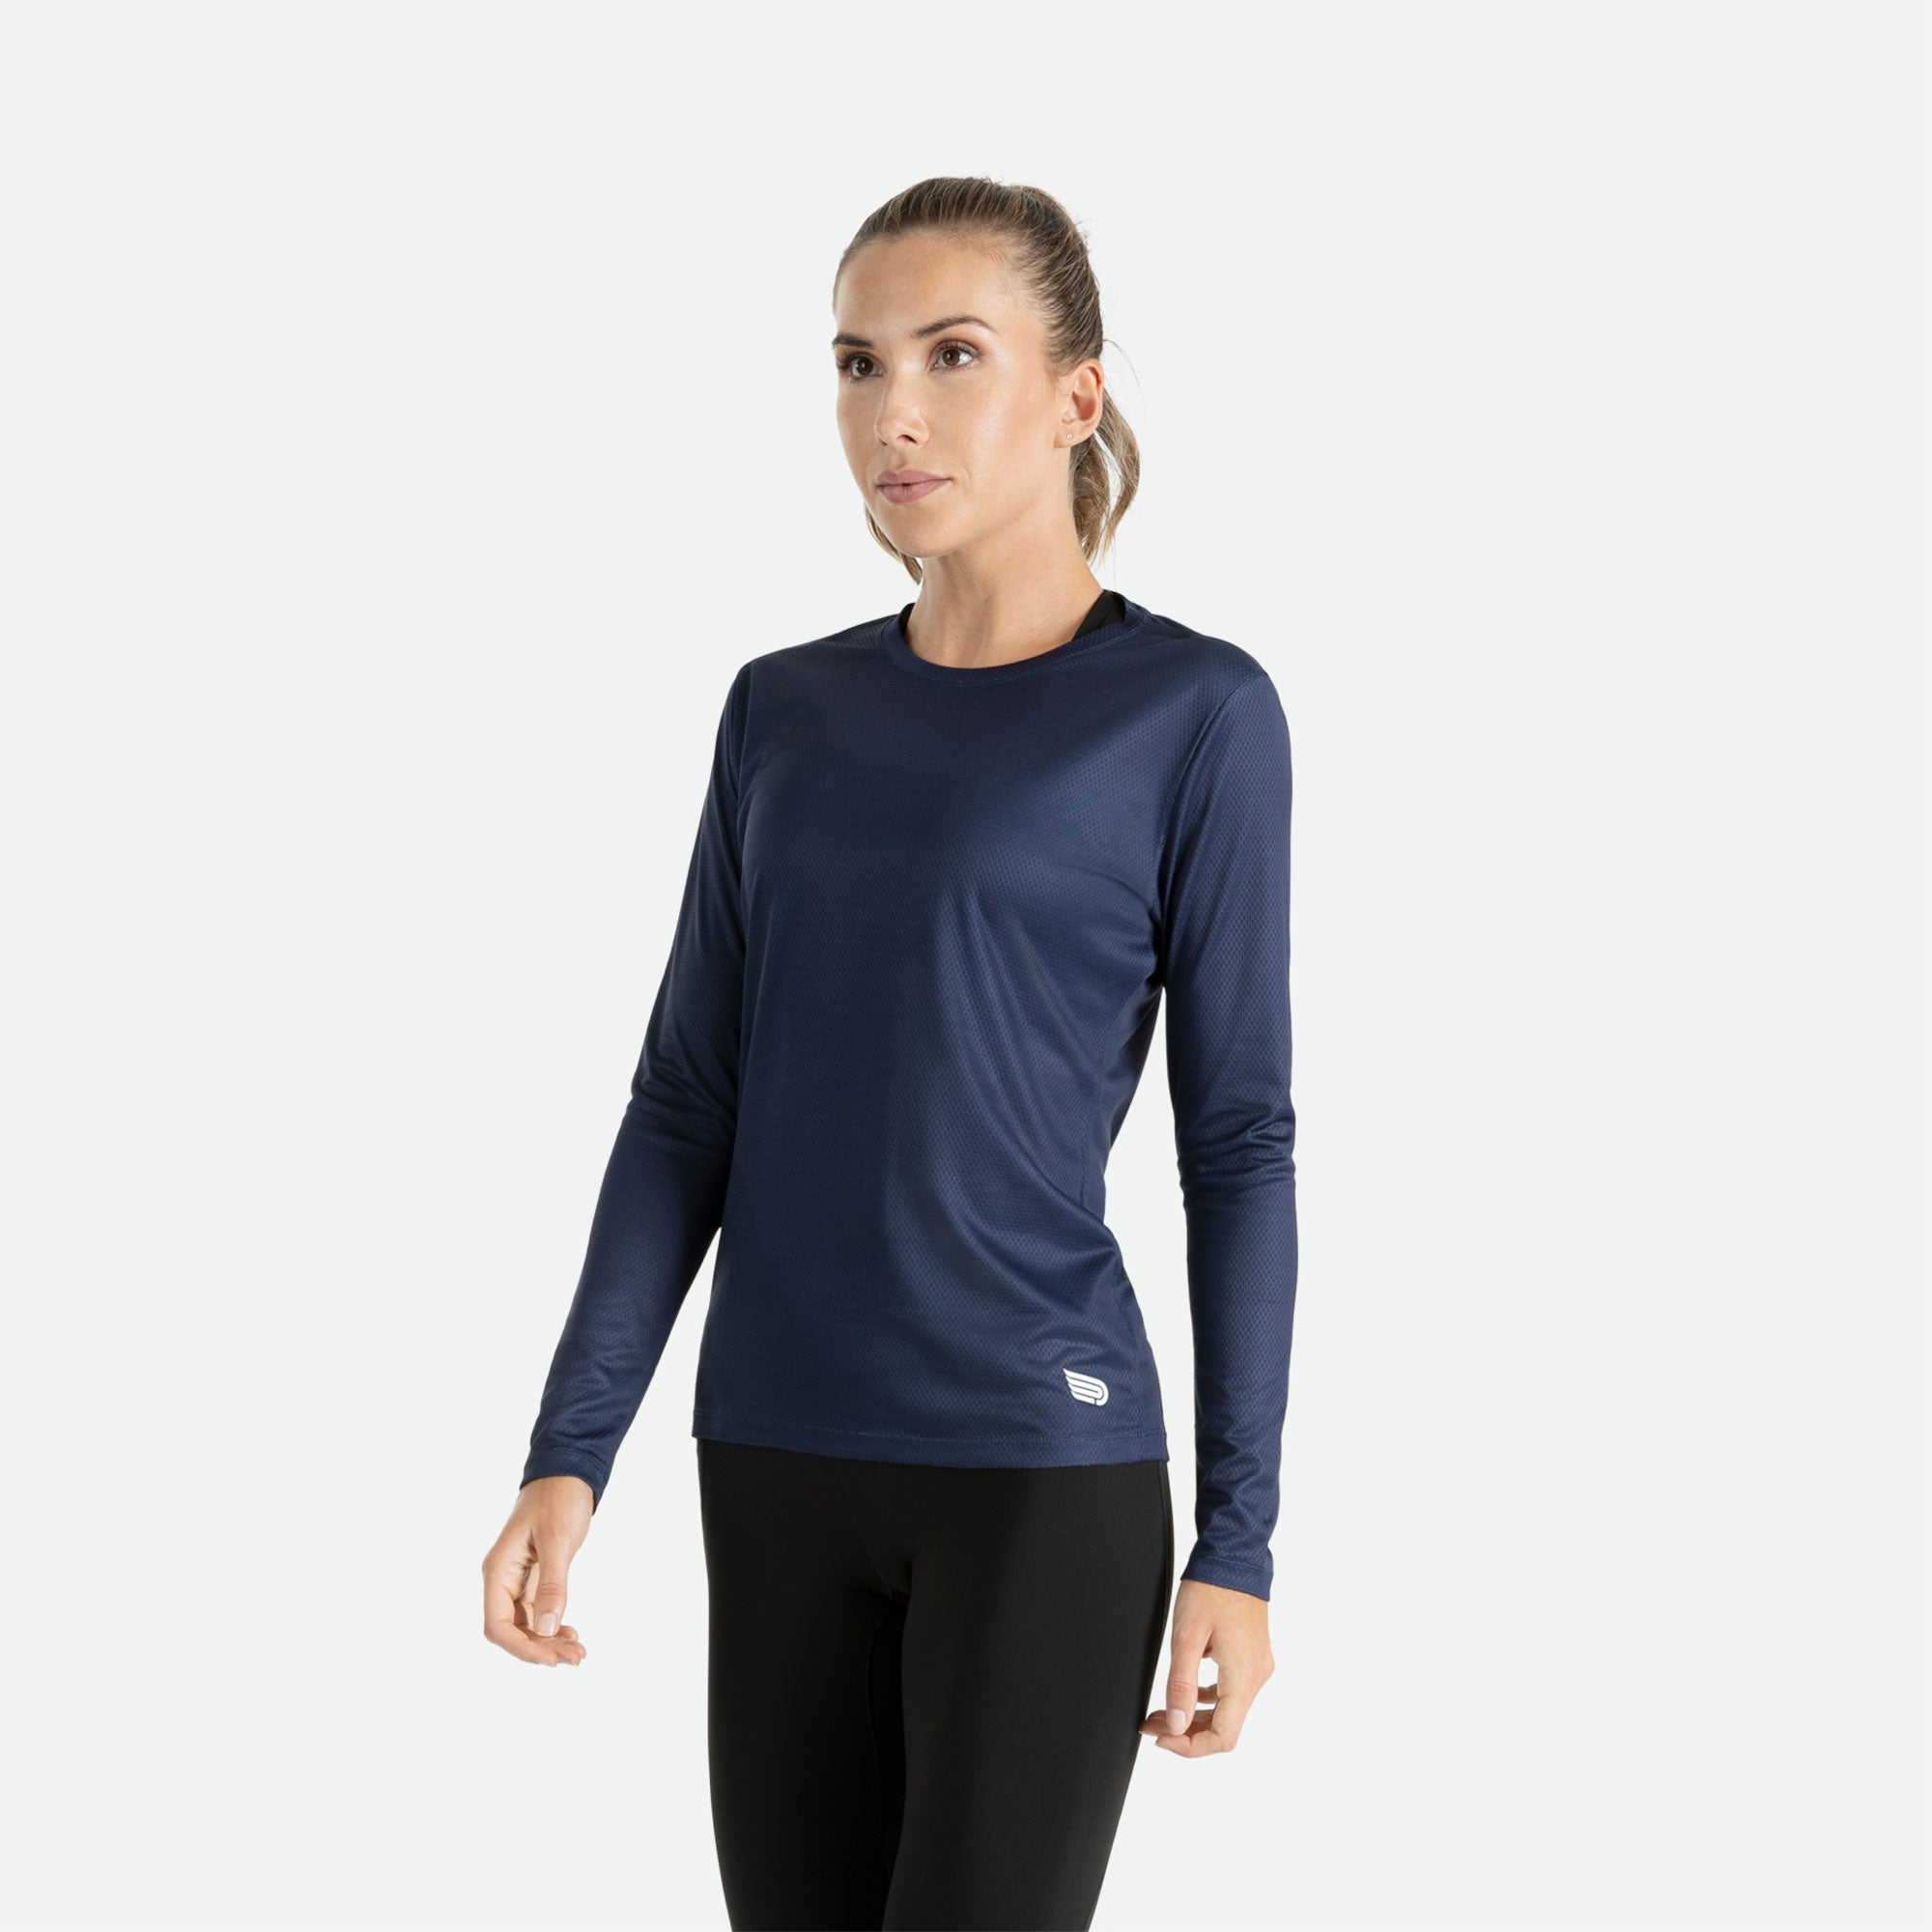 Our Pressio women's navy Hāpai long sleeve t-shirt features EcoTECH MF fabric which has dual filament recycled polyester yarns from Unifi for superior moisture control to keep you dry.